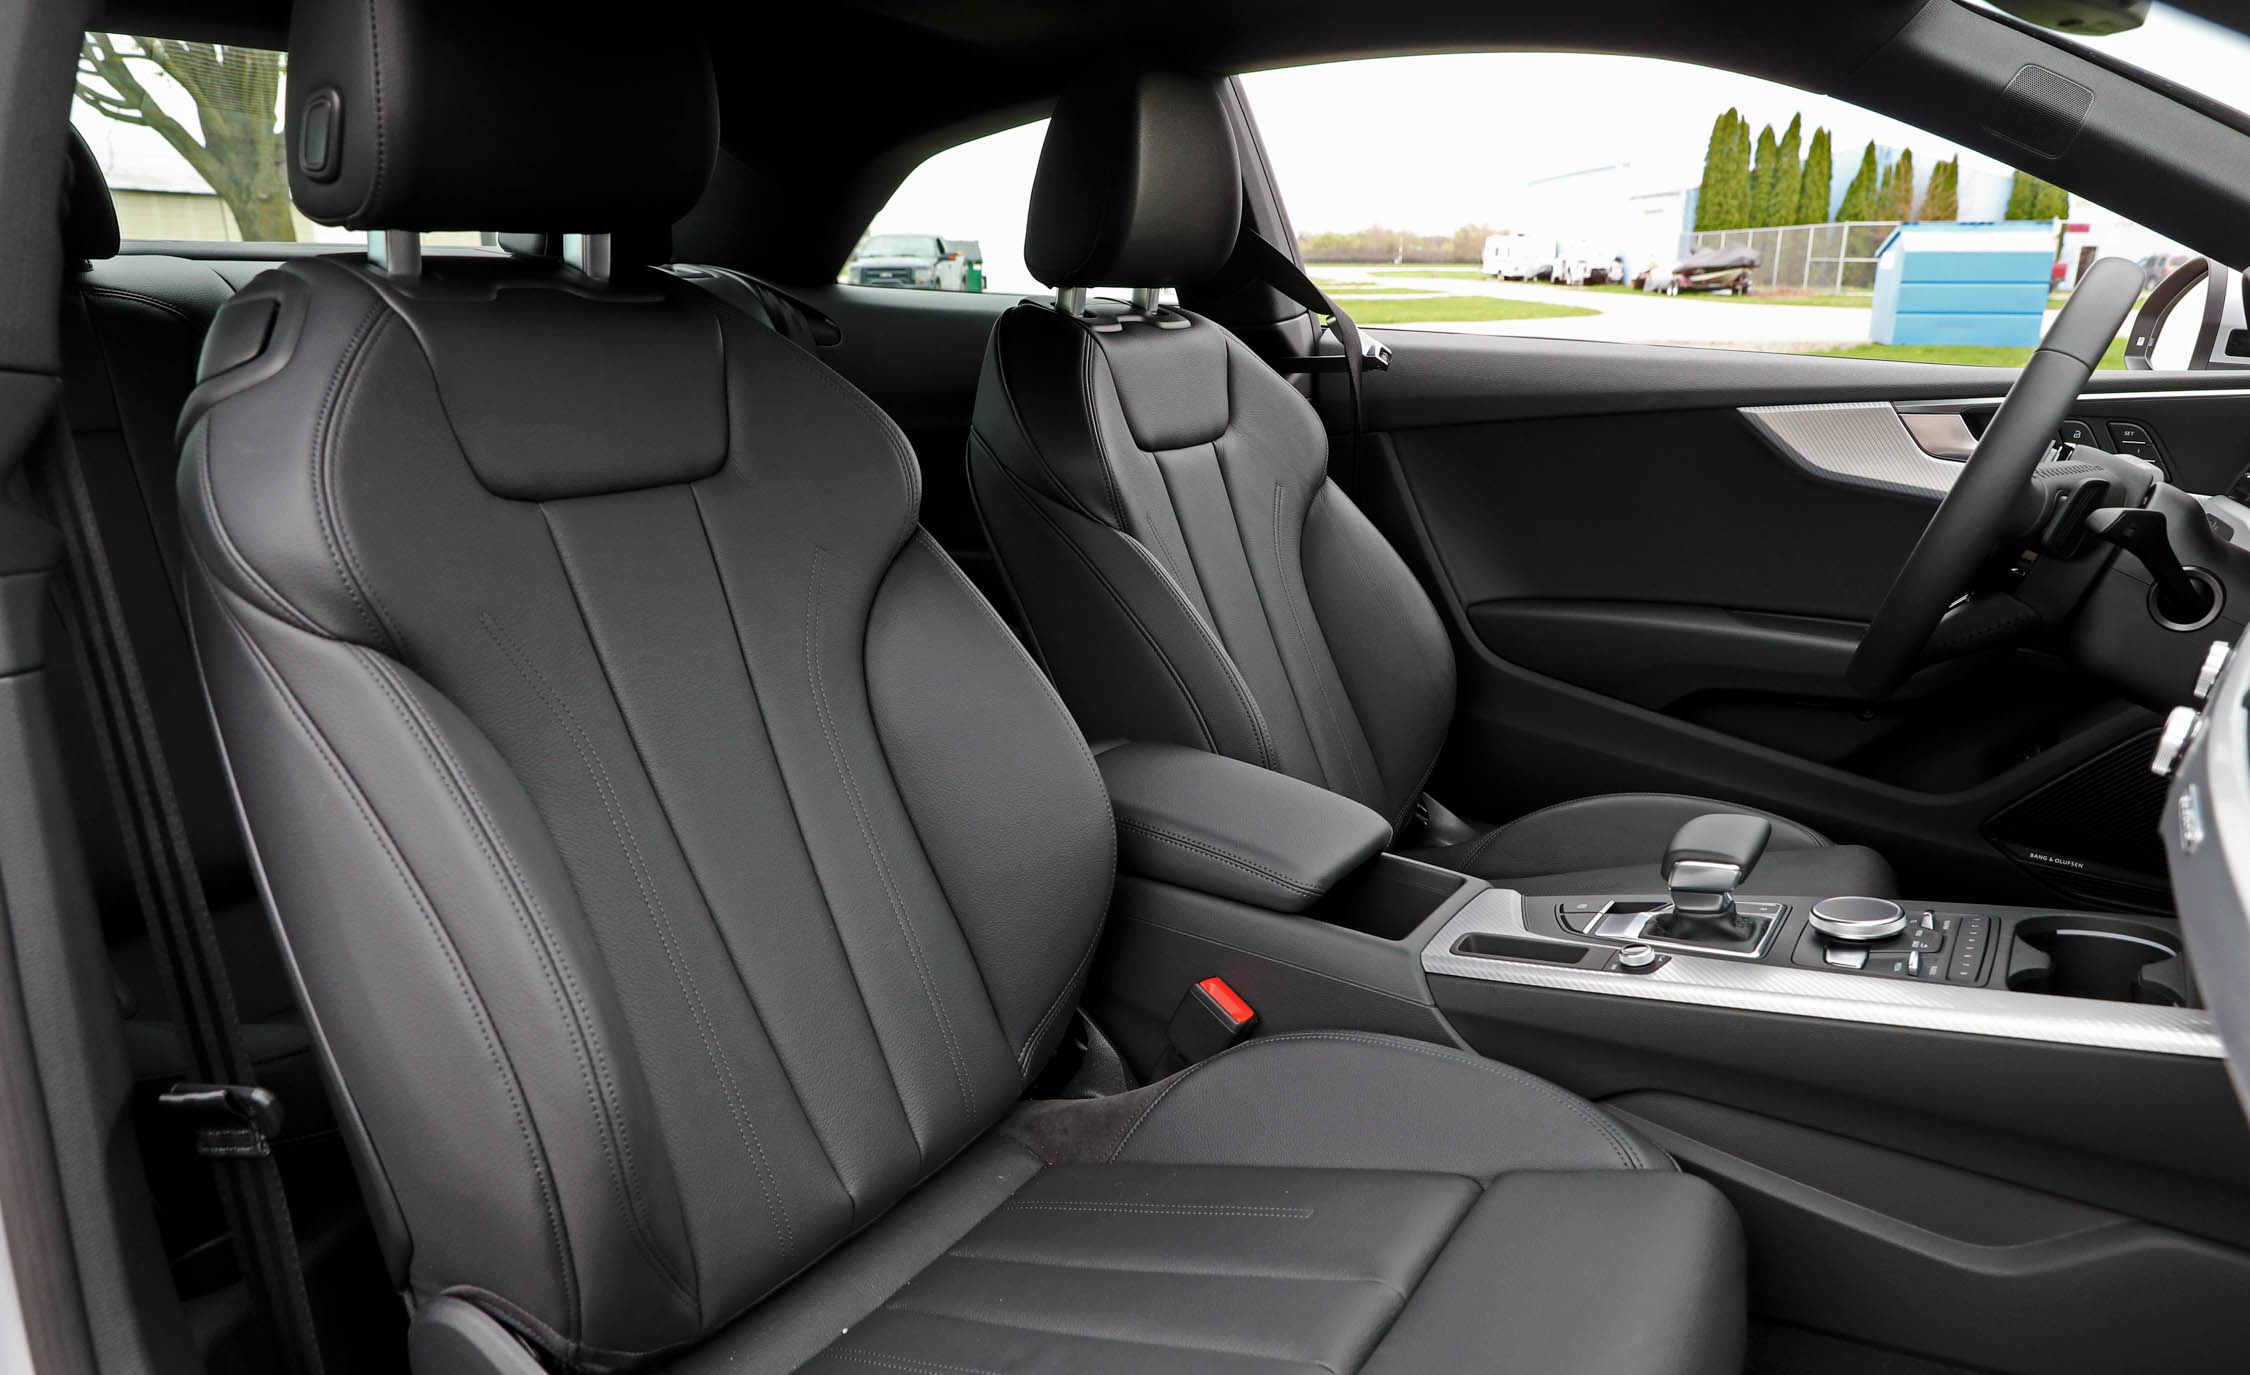 2018 Audi A5 Coupe Interior Seats (Photo 18 of 50)